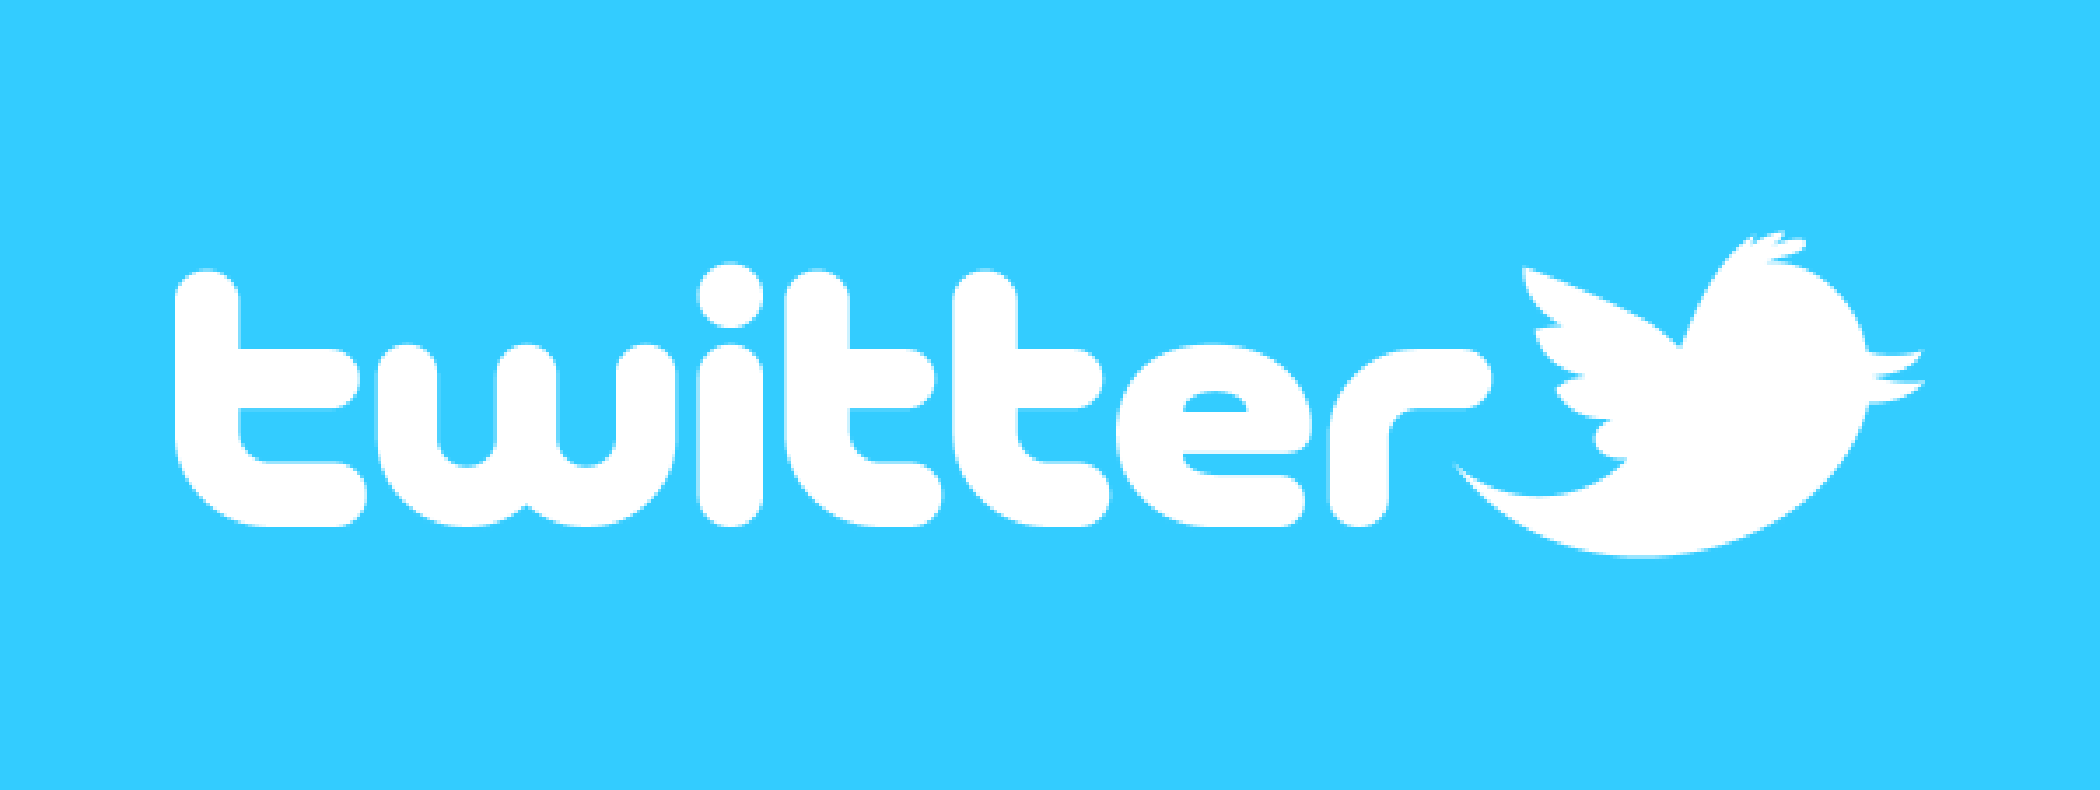 Twitter-logo-full_color